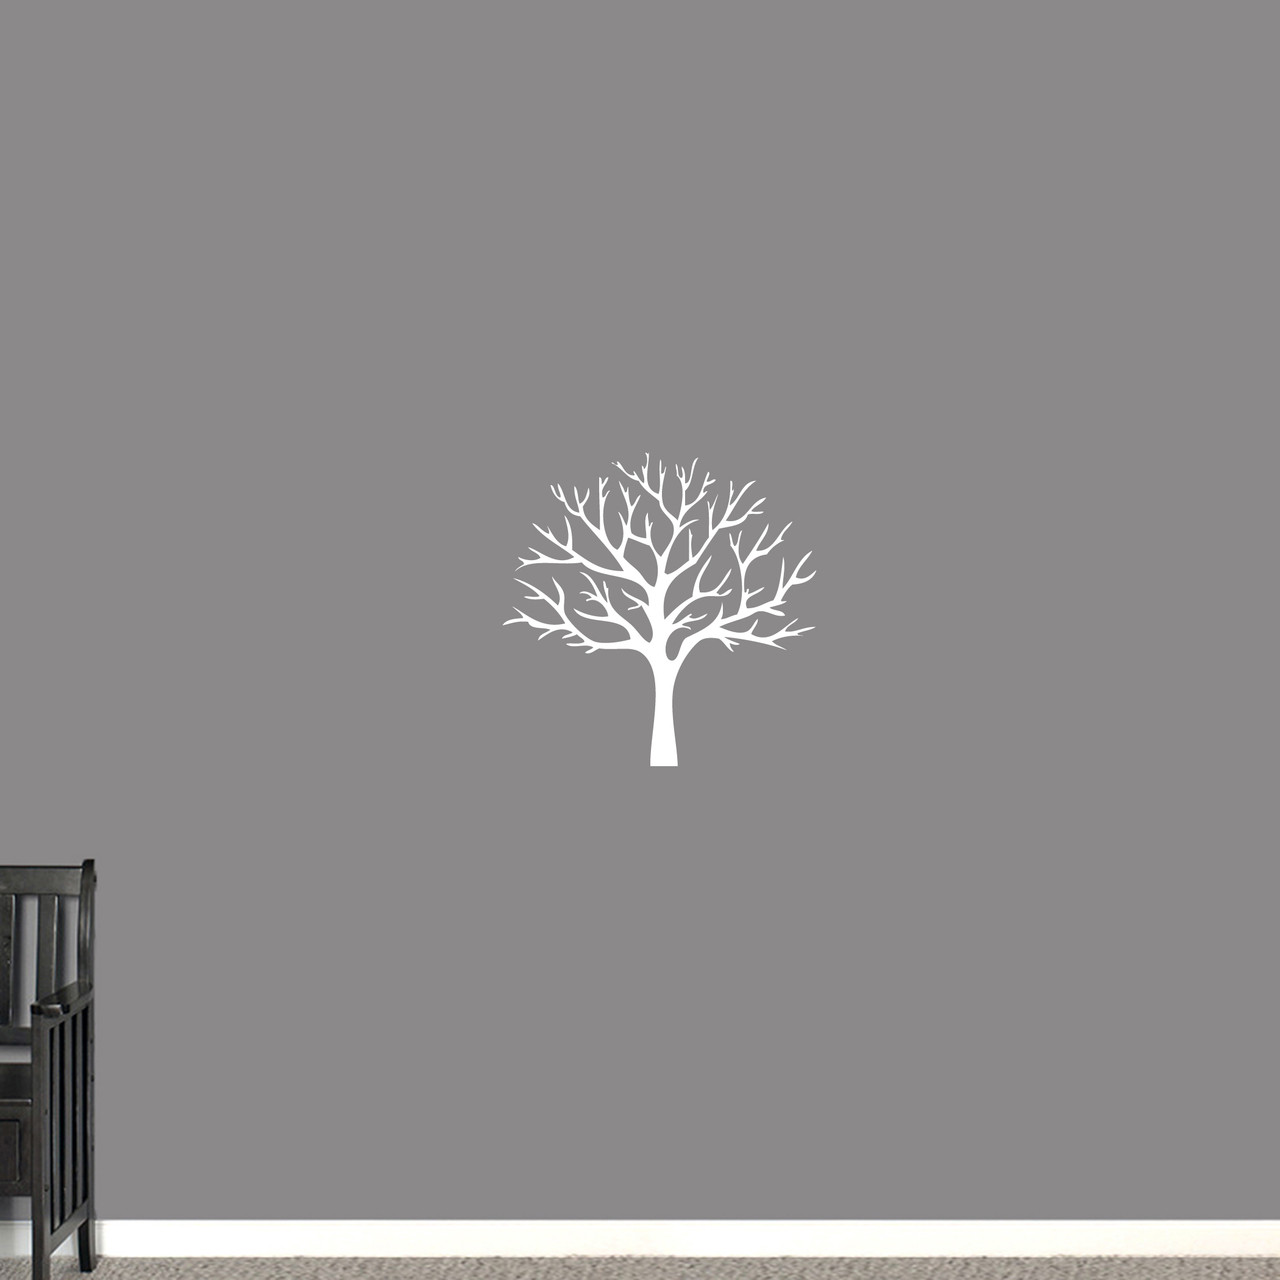 f70396bfcb47 Winter Tree Wall Decal, Bare Tree with Branches Decal, Sweetums ...